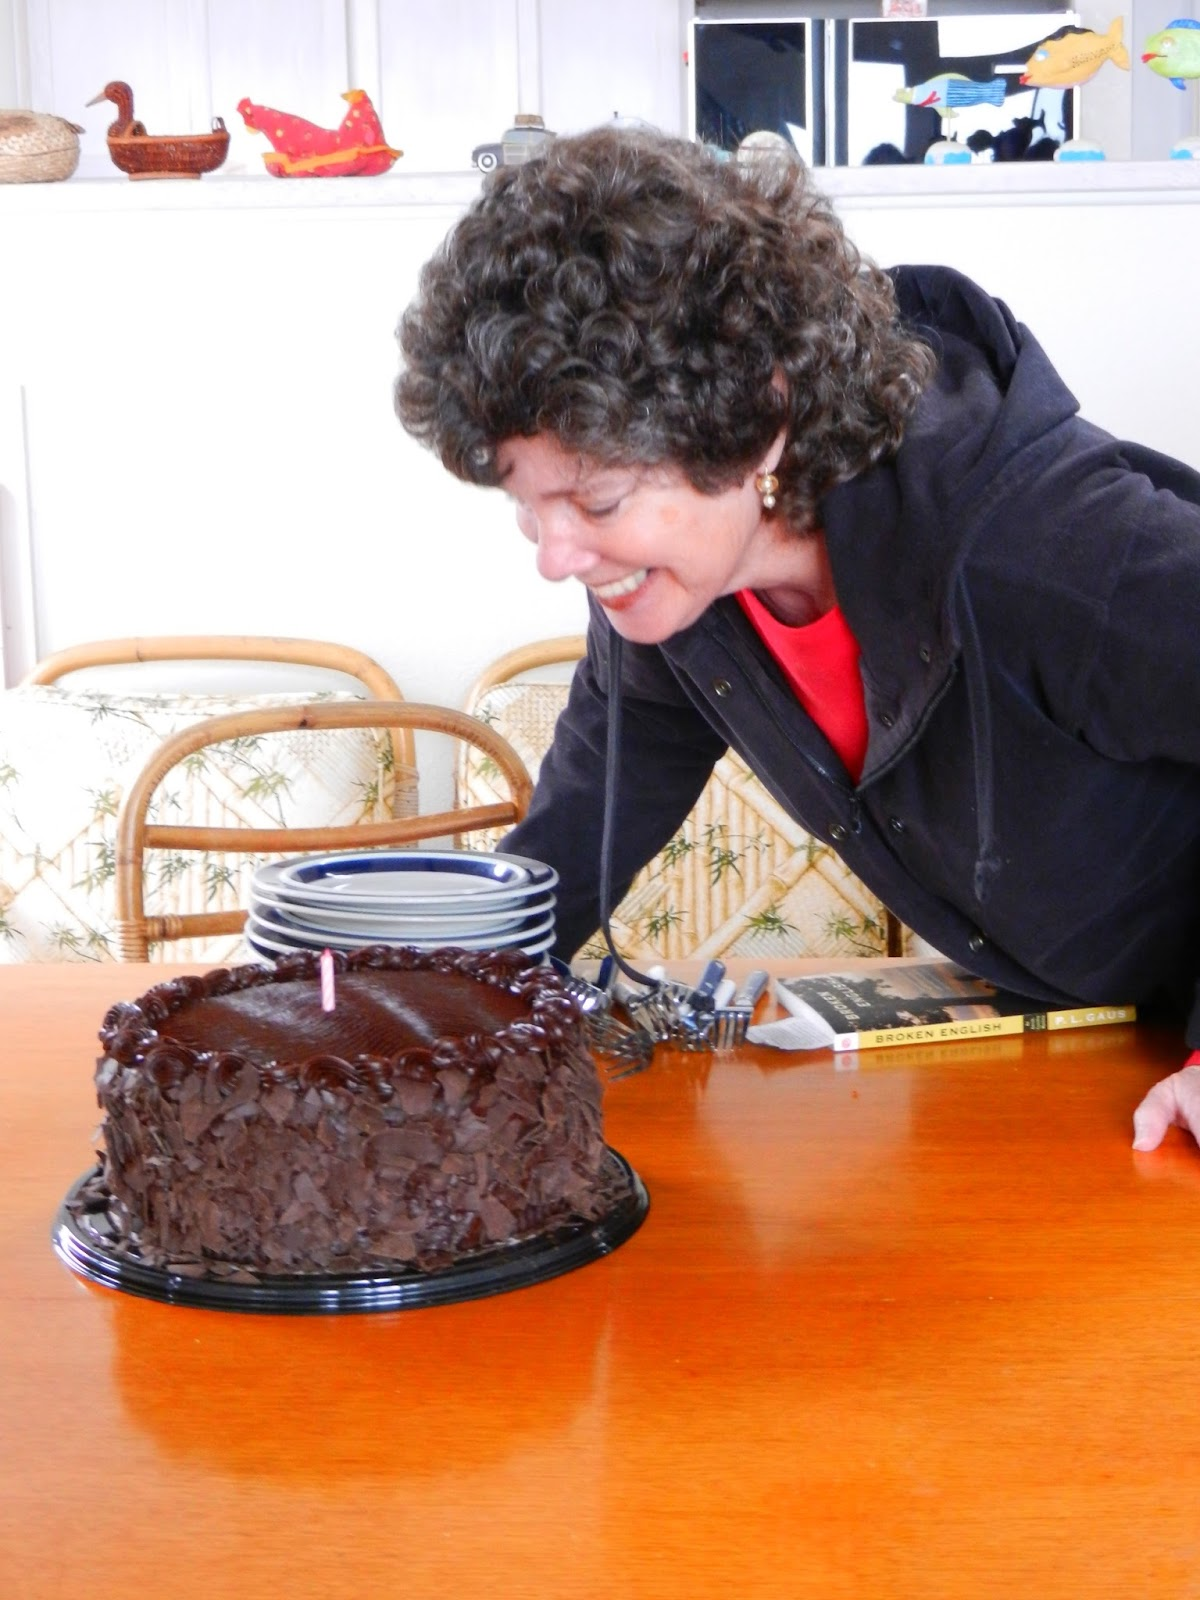 Dying for Chocolate: Costco All American Chocolate Cake